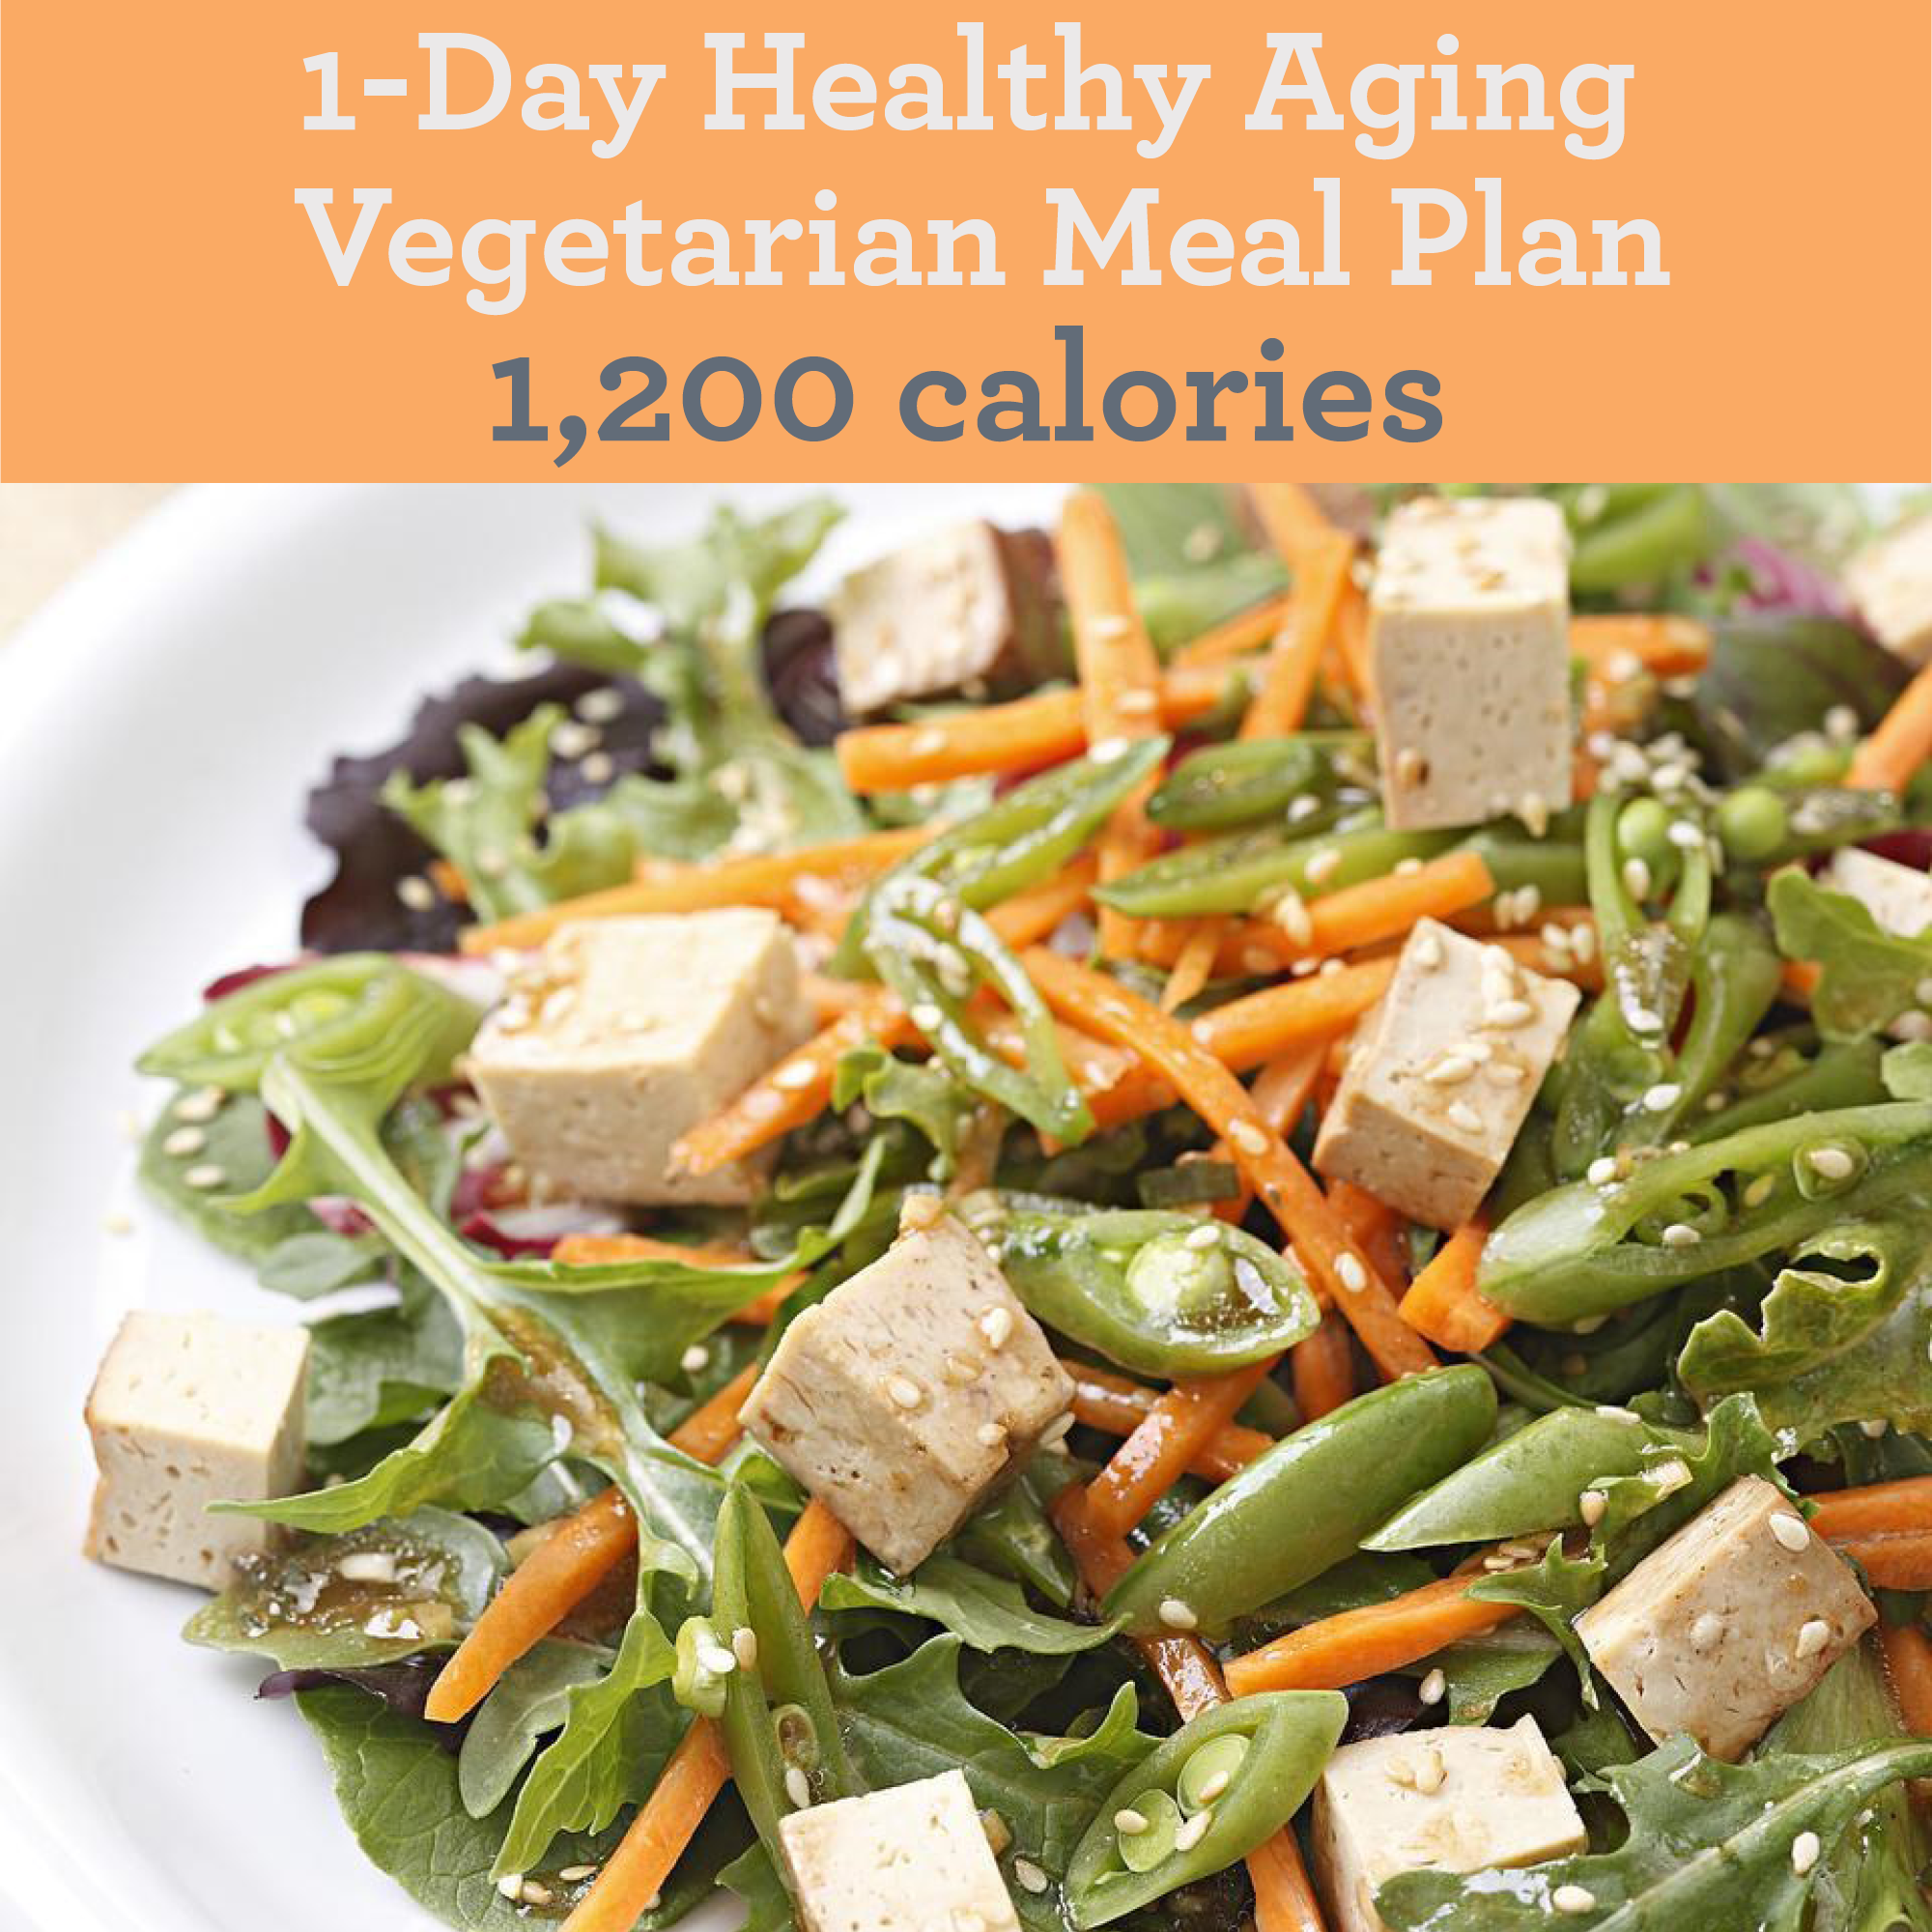 1-Day Healthy Aging Vegetarian Meal Plan 1,200 Calories